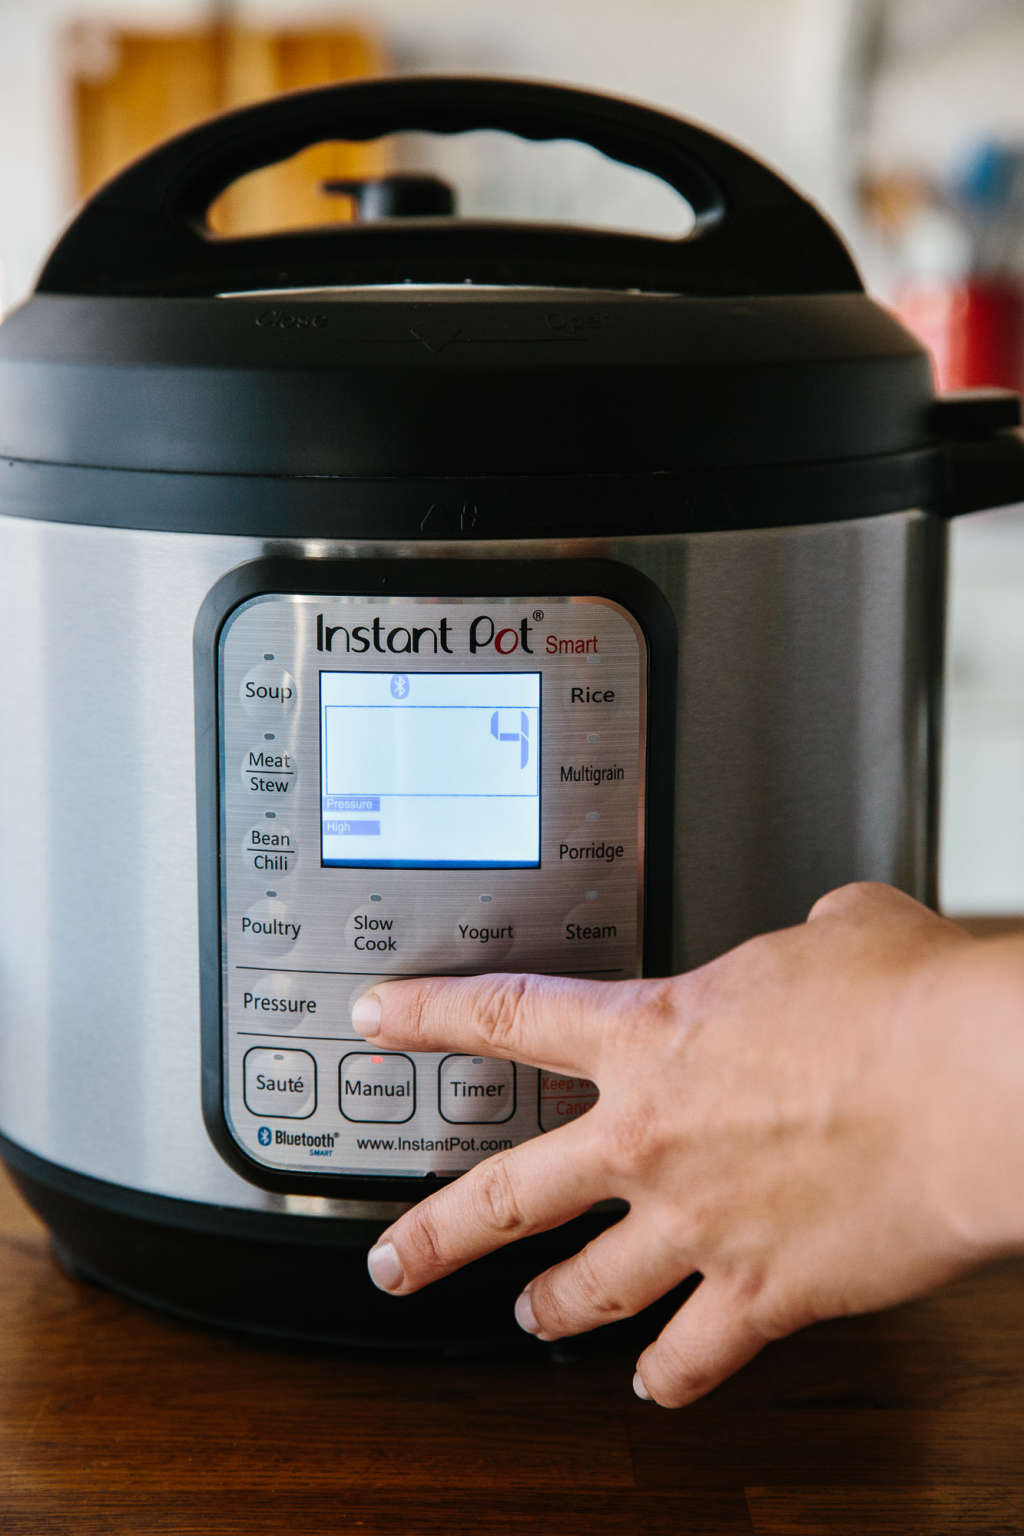 The Best Thing to Make in the Instant Pot